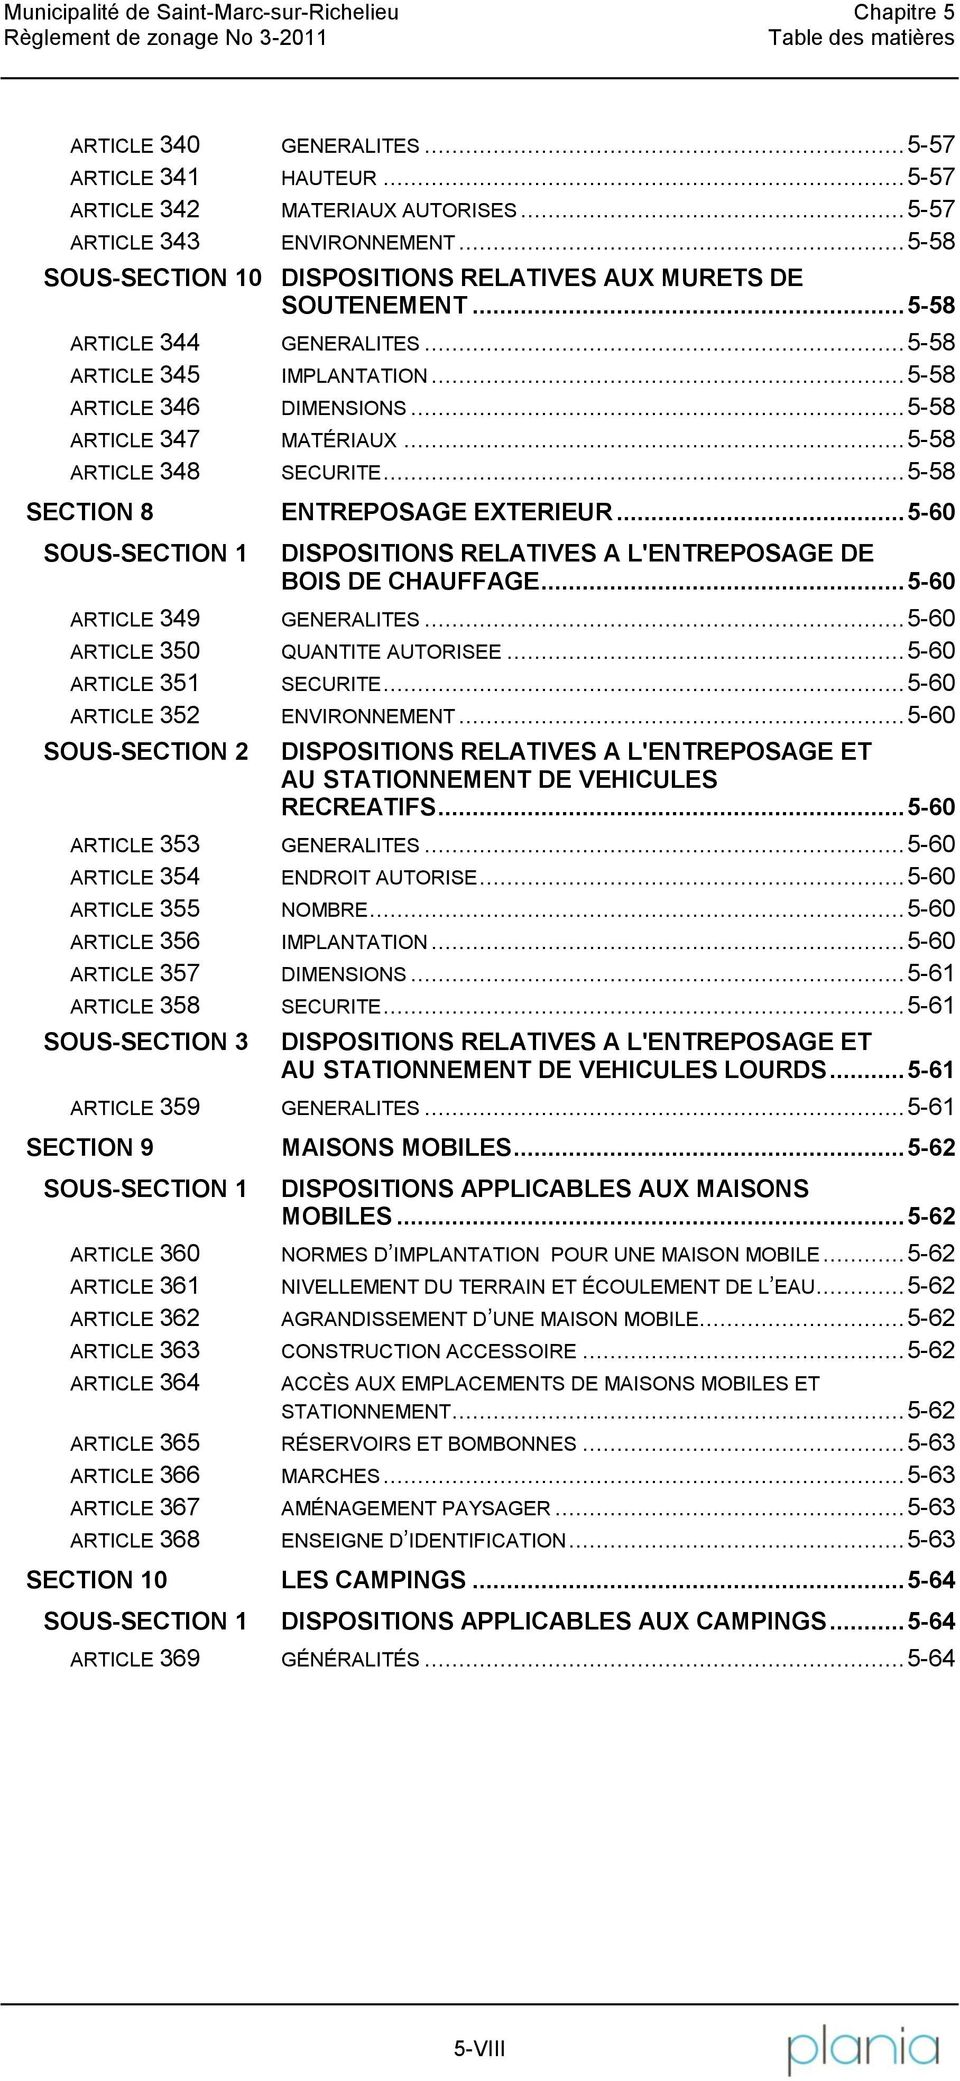 .. 5-58 ARTICLE 348 SECURITE... 5-58 SECTION 8 ENTREPOSAGE EXTERIEUR... 5-60 SOUS-SECTION 1 DISPOSITIONS RELATIVES A L'ENTREPOSAGE DE BOIS DE CHAUFFAGE... 5-60 ARTICLE 349.